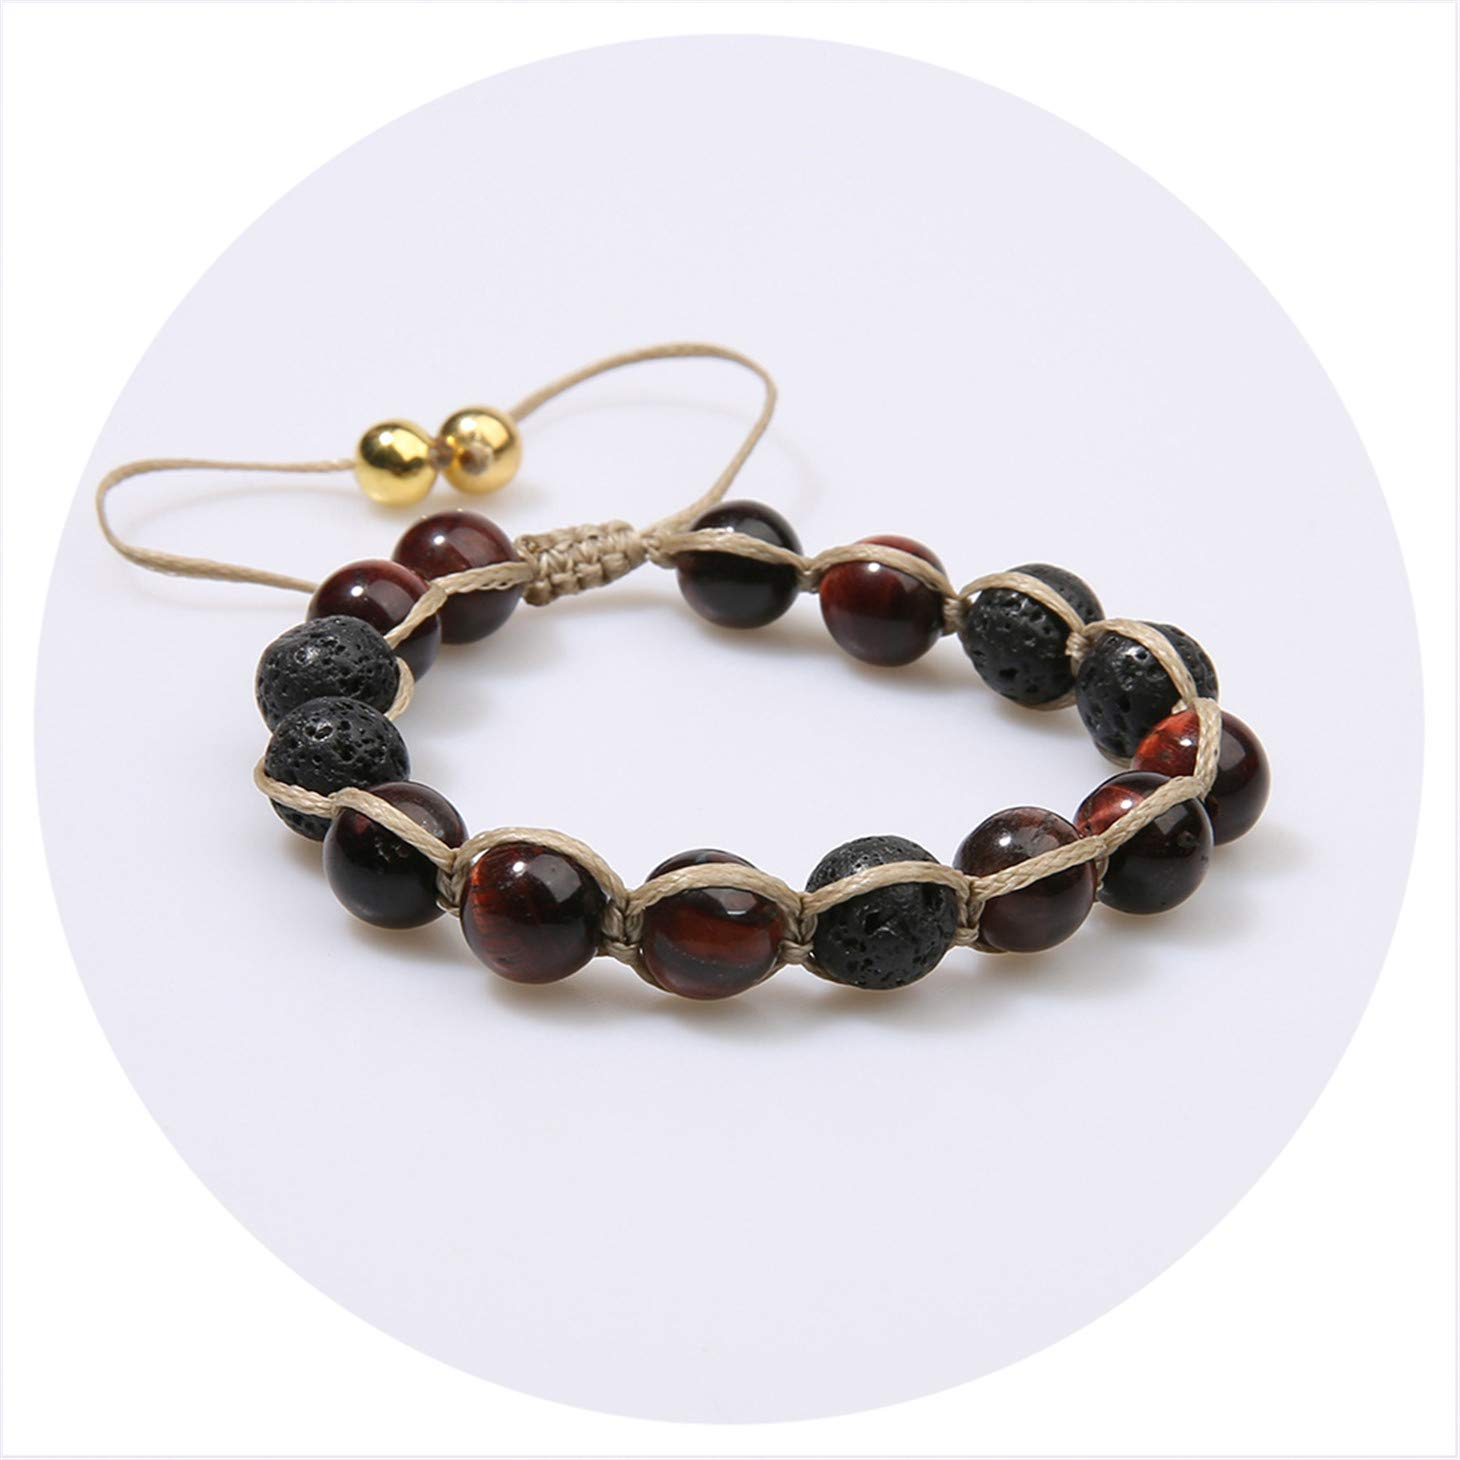 Natural Stone Beads Handmade Unique Bracelet Charm Friendship Gift Simple Design Bracelet for Men W